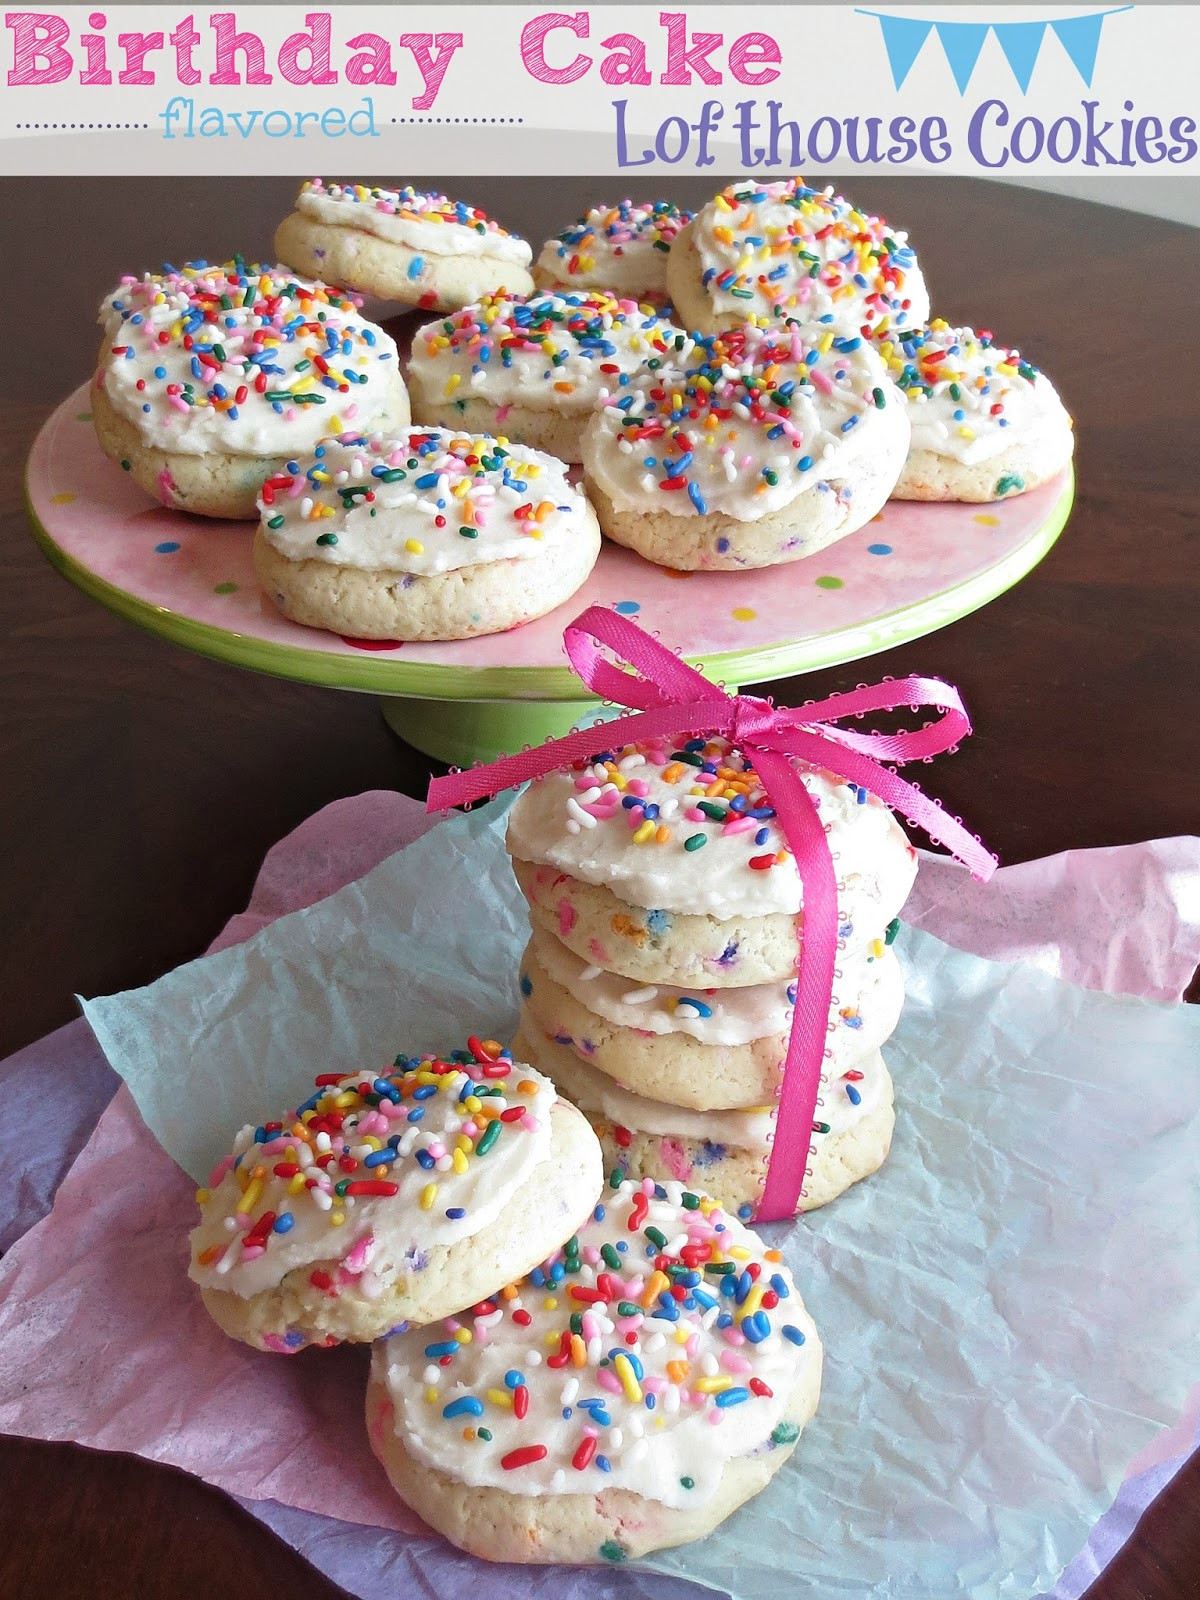 Best ideas about Birthday Cake Flavors . Save or Pin Kaitlin in the Kitchen Birthday Cake flavored Lofthouse Now.